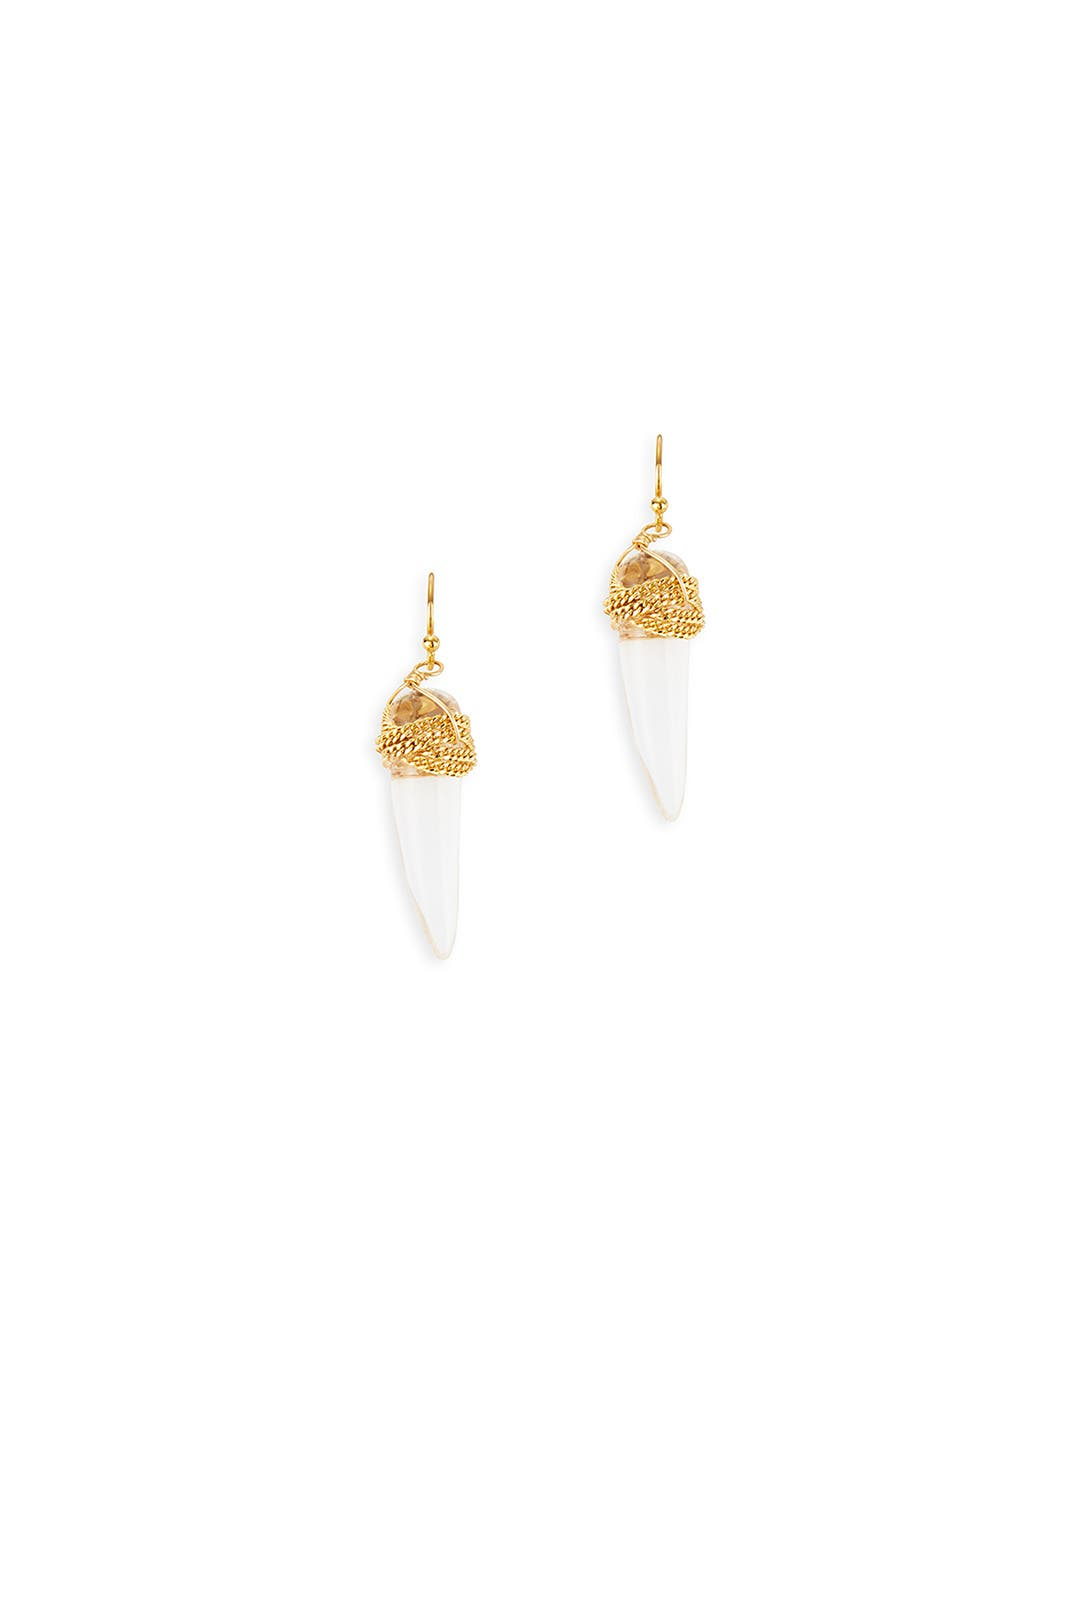 Saber Tooth Earrings by AV Max